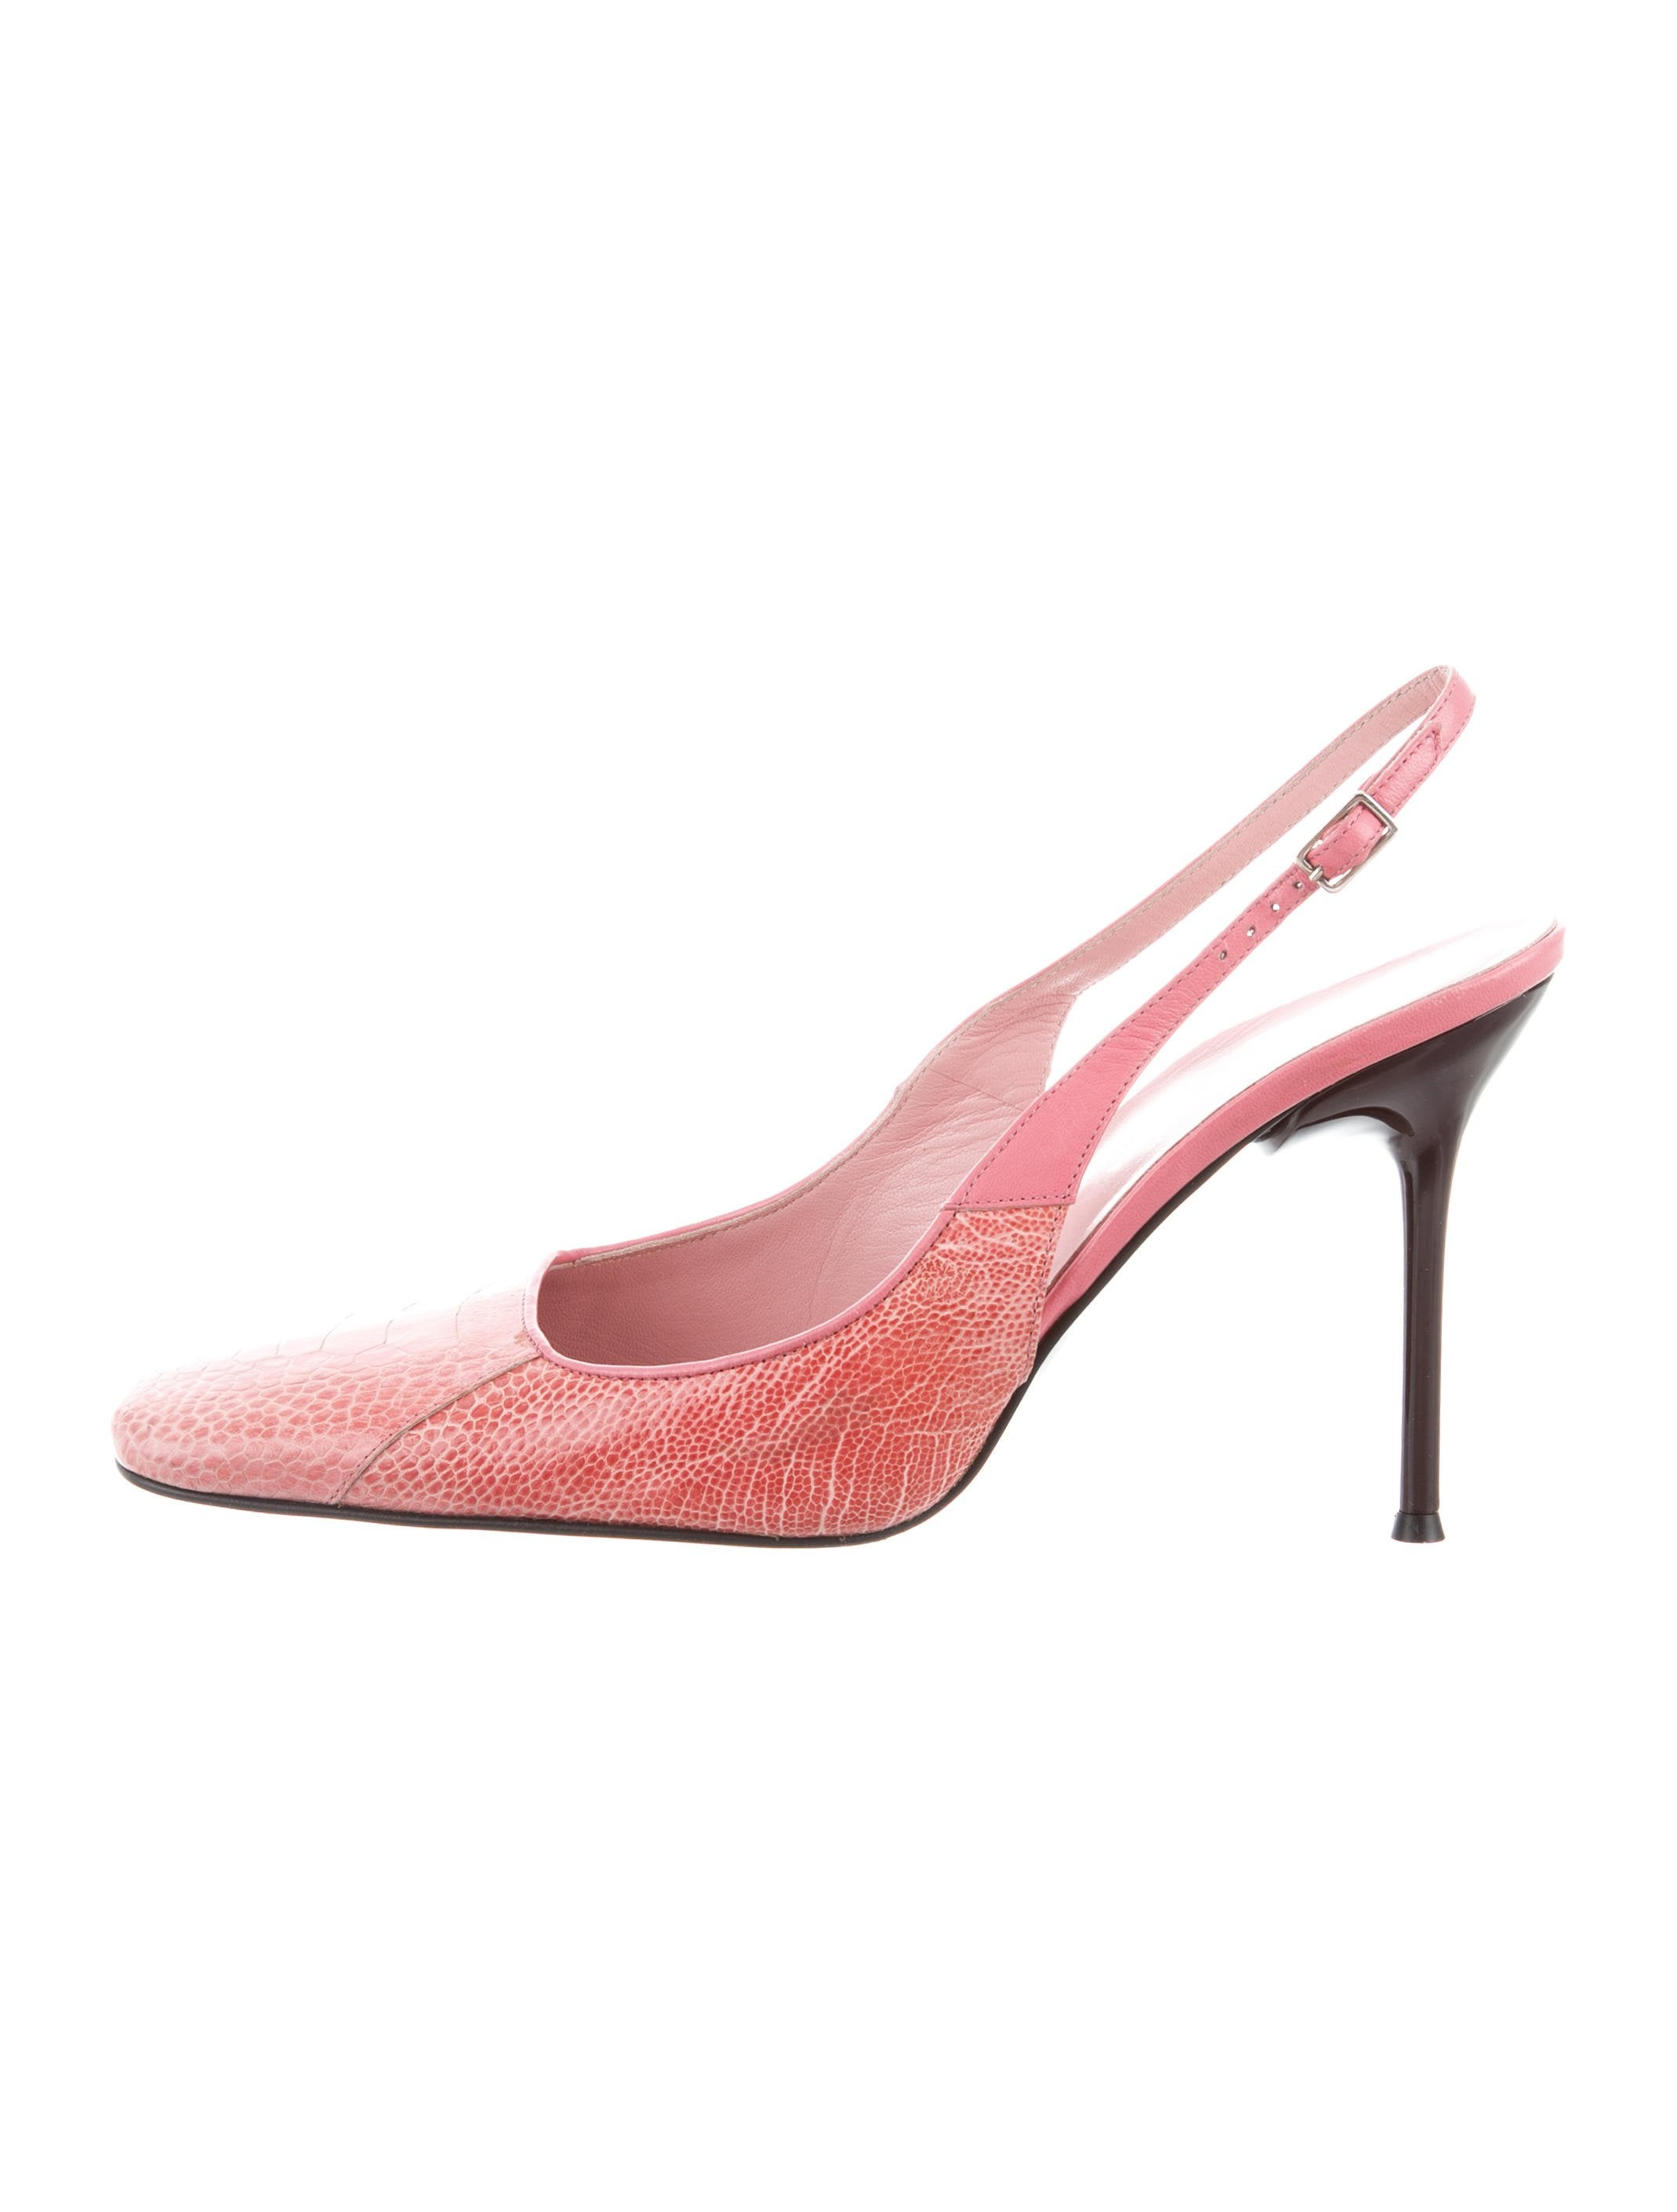 clearance shop for discount ebay Dolce & Gabbana Ostrich Square-Toe Pumps discount pay with visa limited edition cheap price b5vLu42Eq1